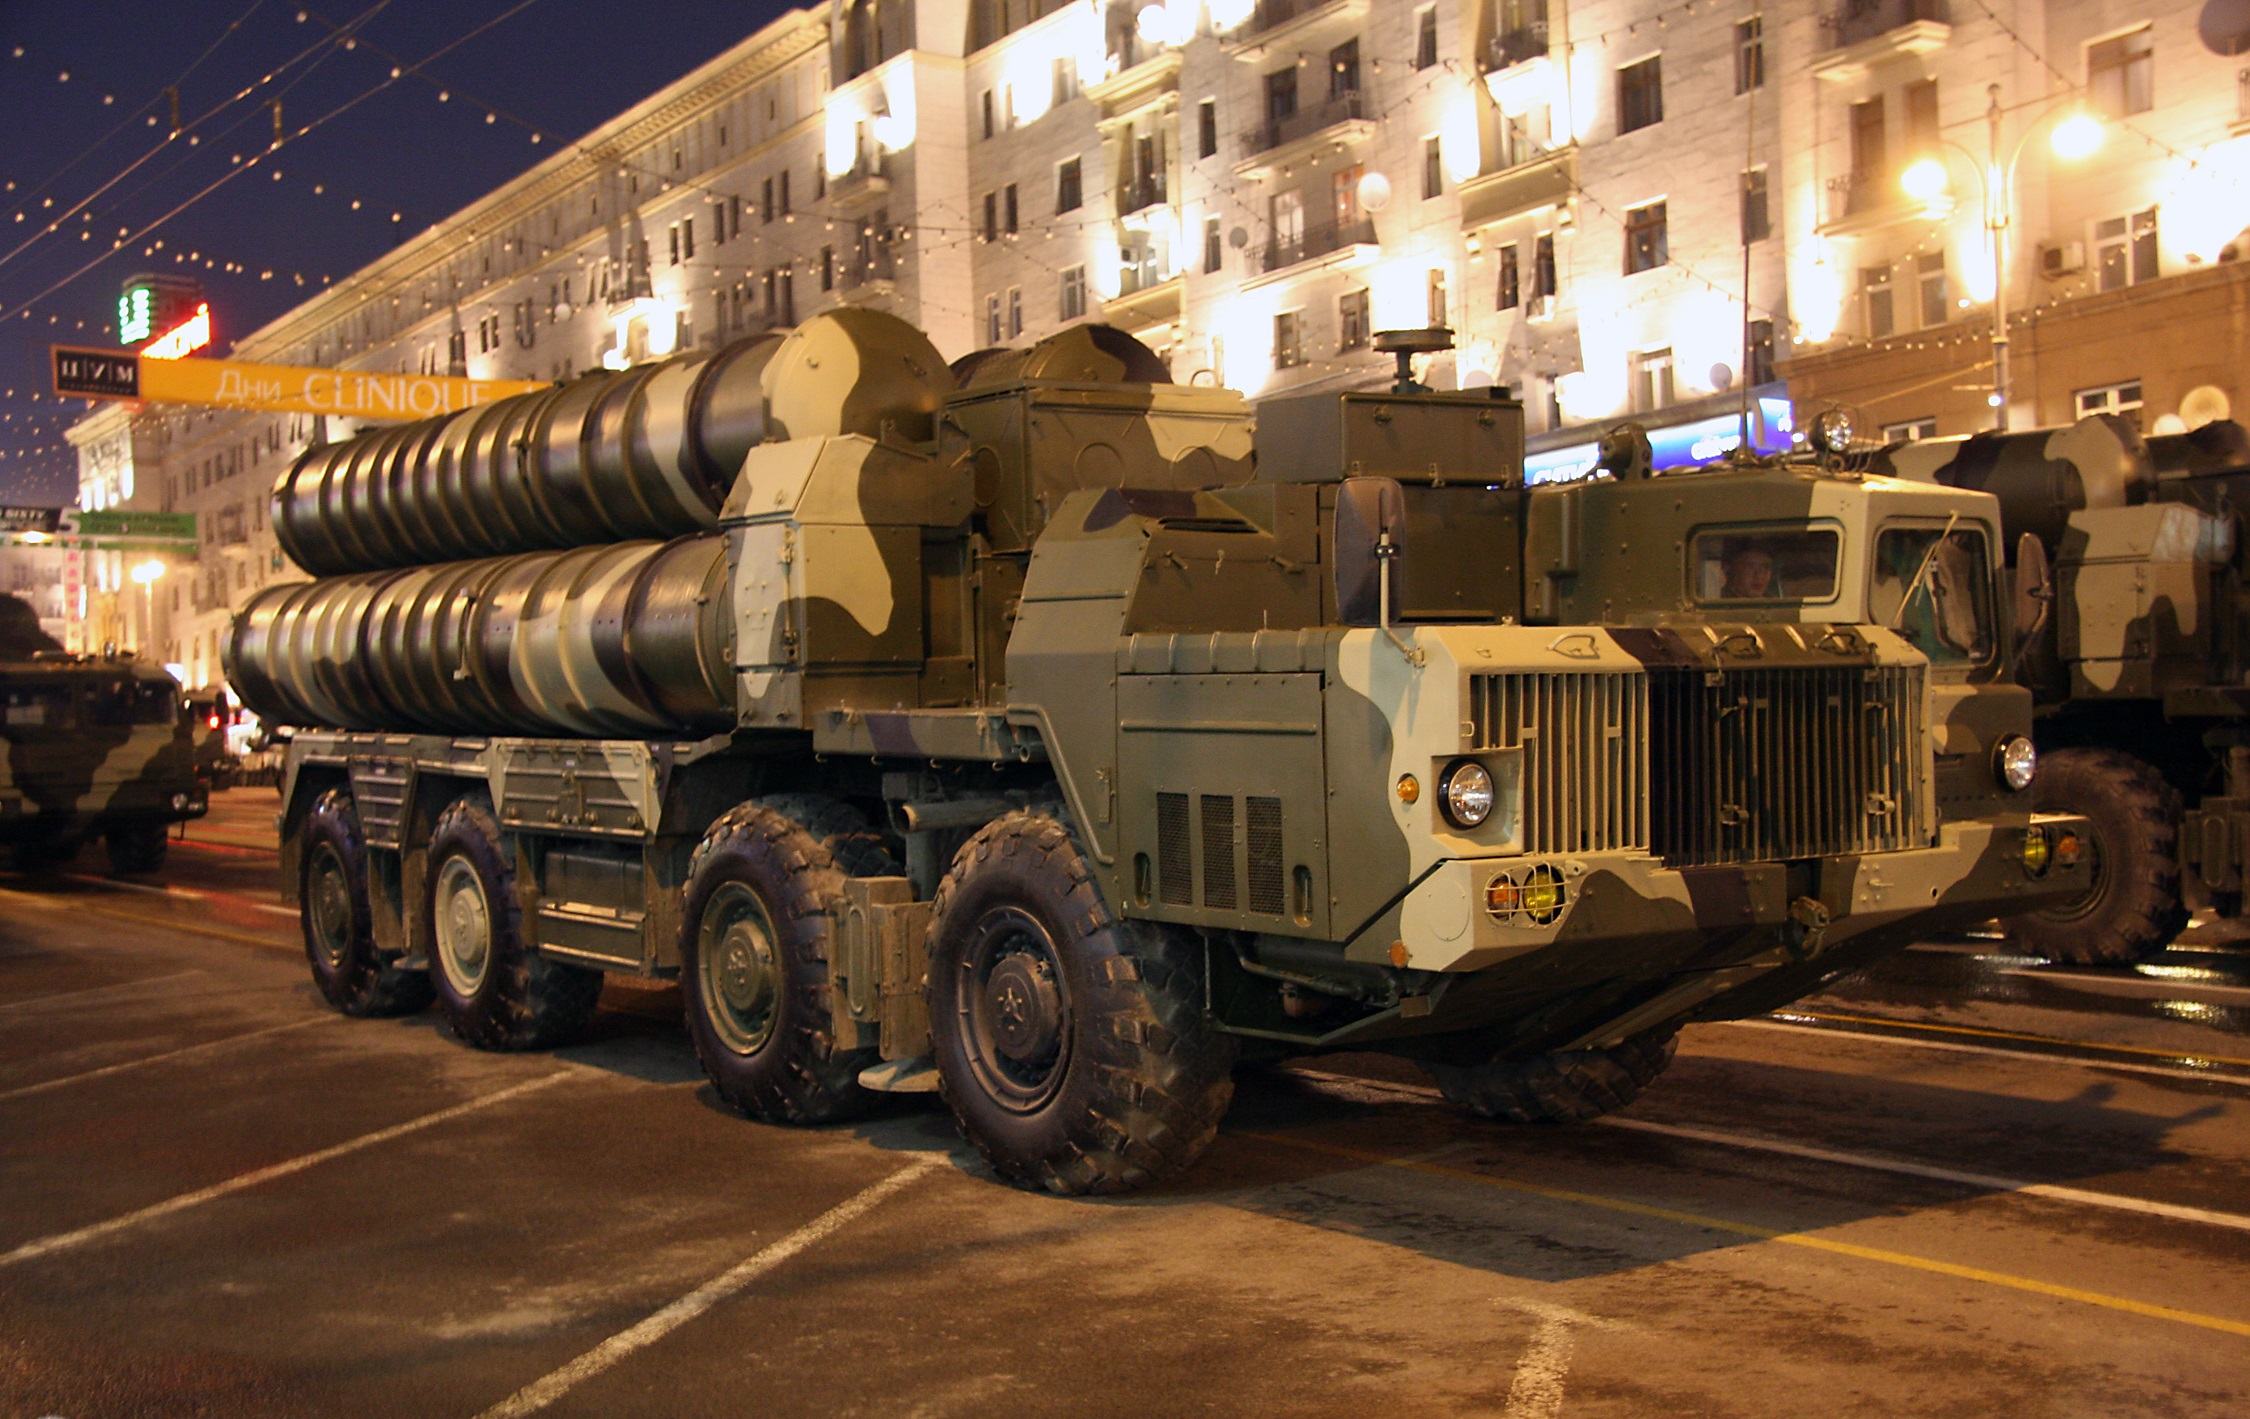 S-300 - 2009 Moscow Victory Day Parade